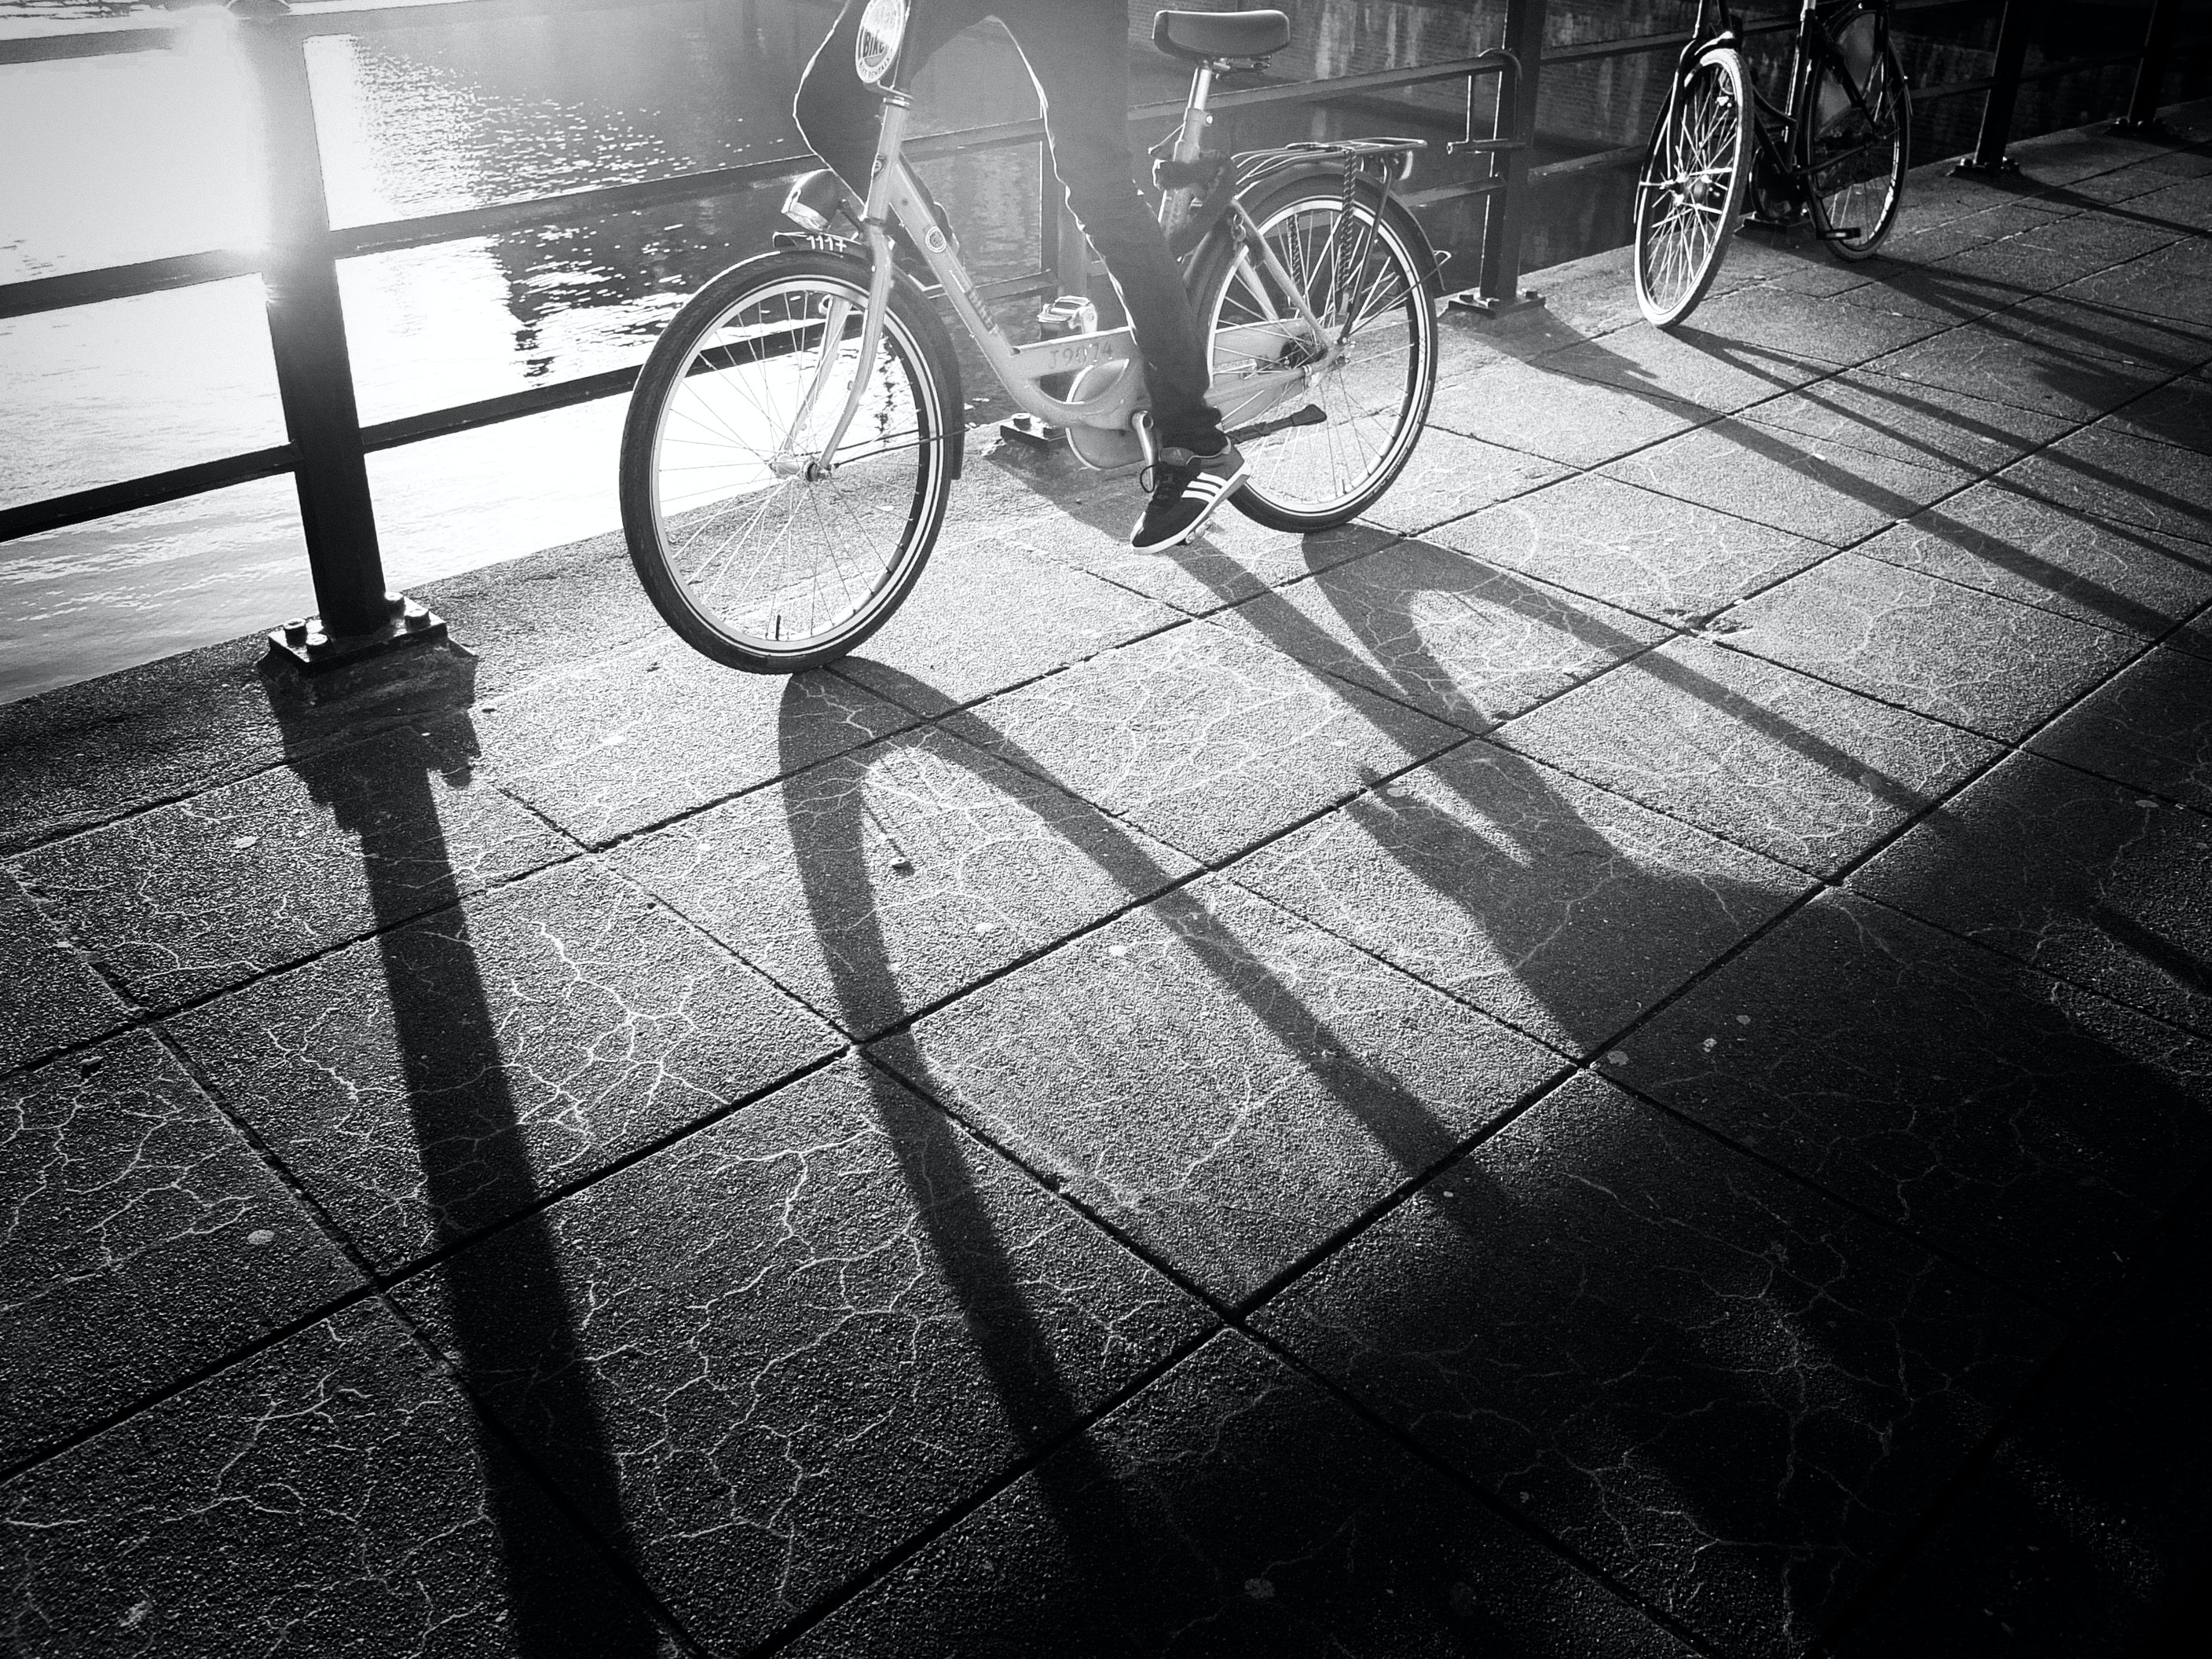 grayscale photo of a person wearing sneakers riding a bicycle